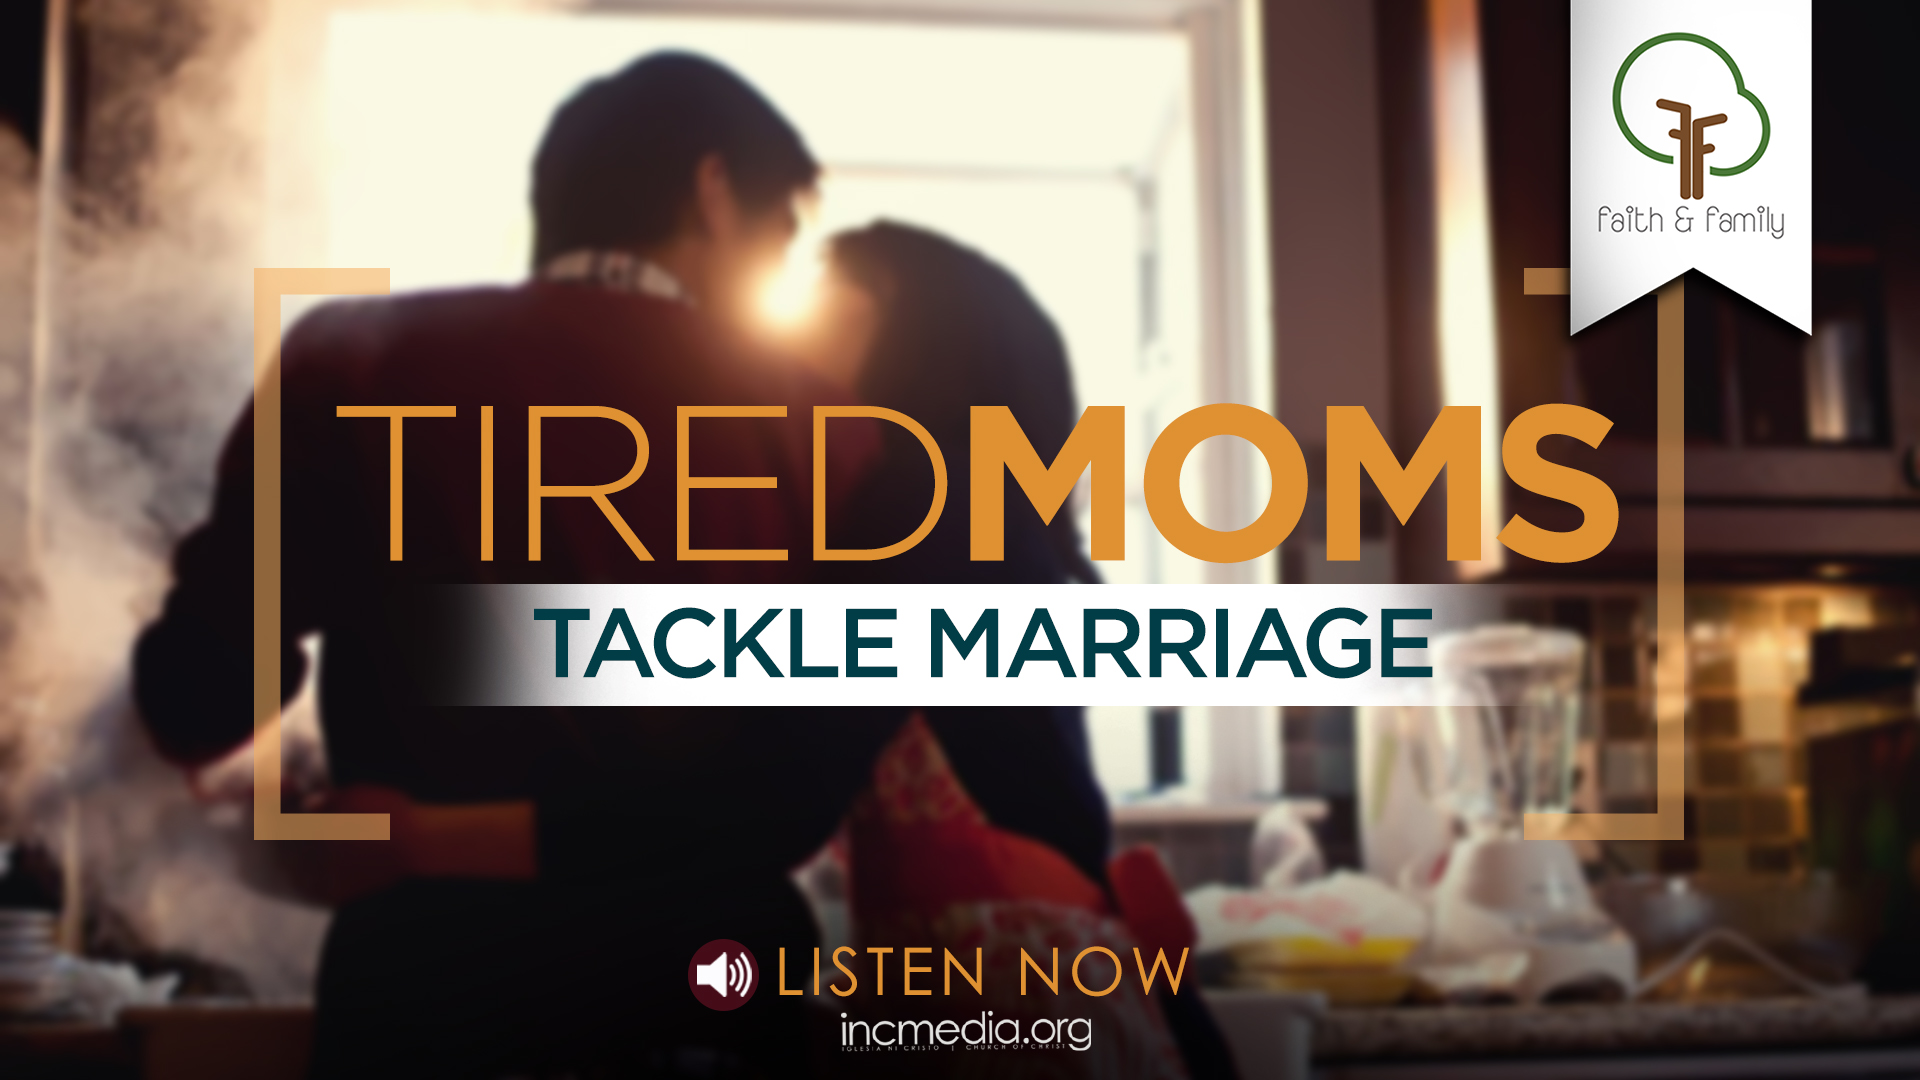 Tired Moms Tackle Marriage